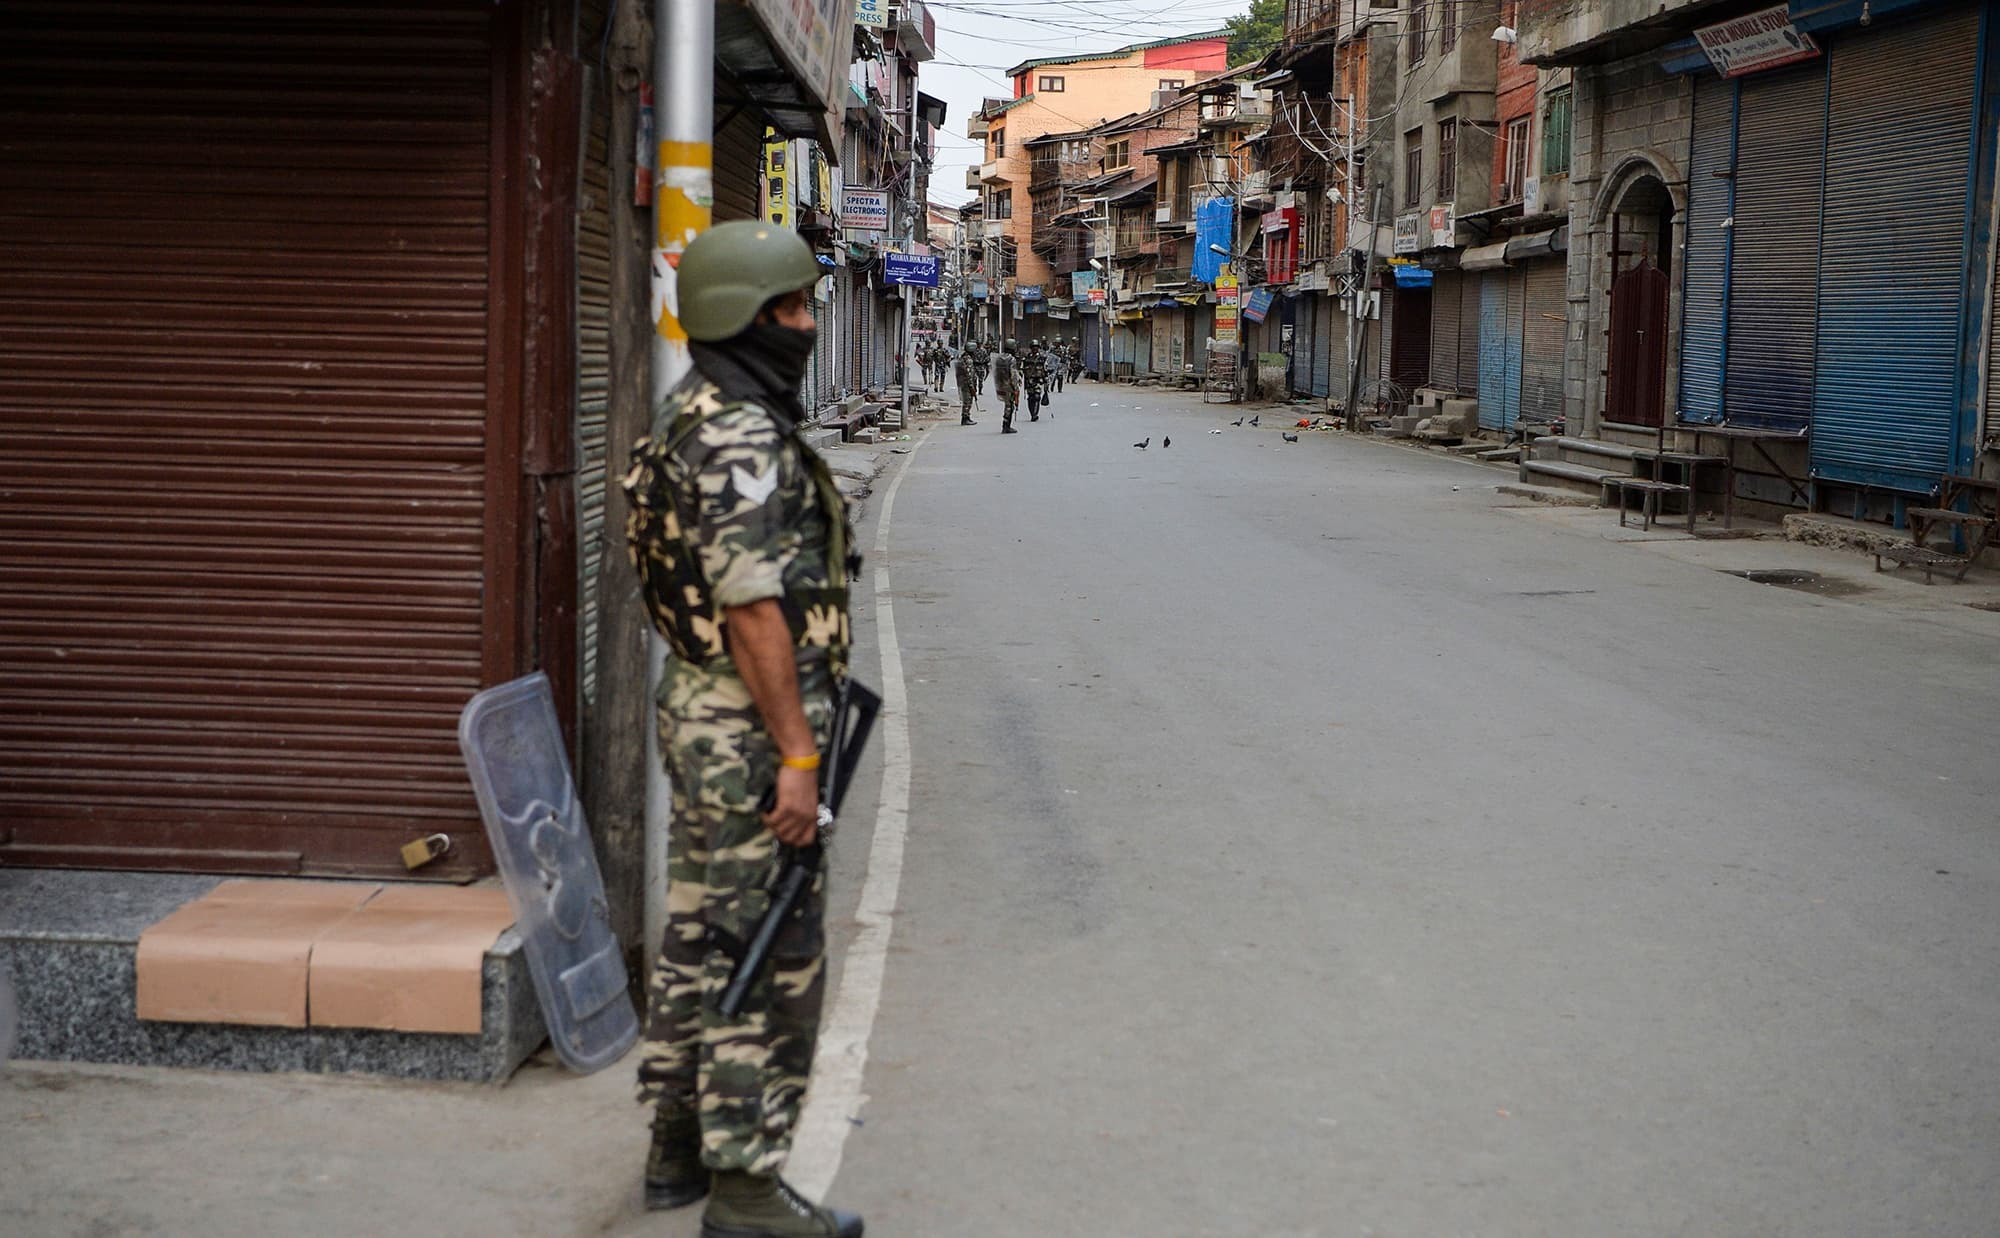 BJP worker out on morning walk fired upon in Jammu and Kashmir's Budgam, third attack in 5 days